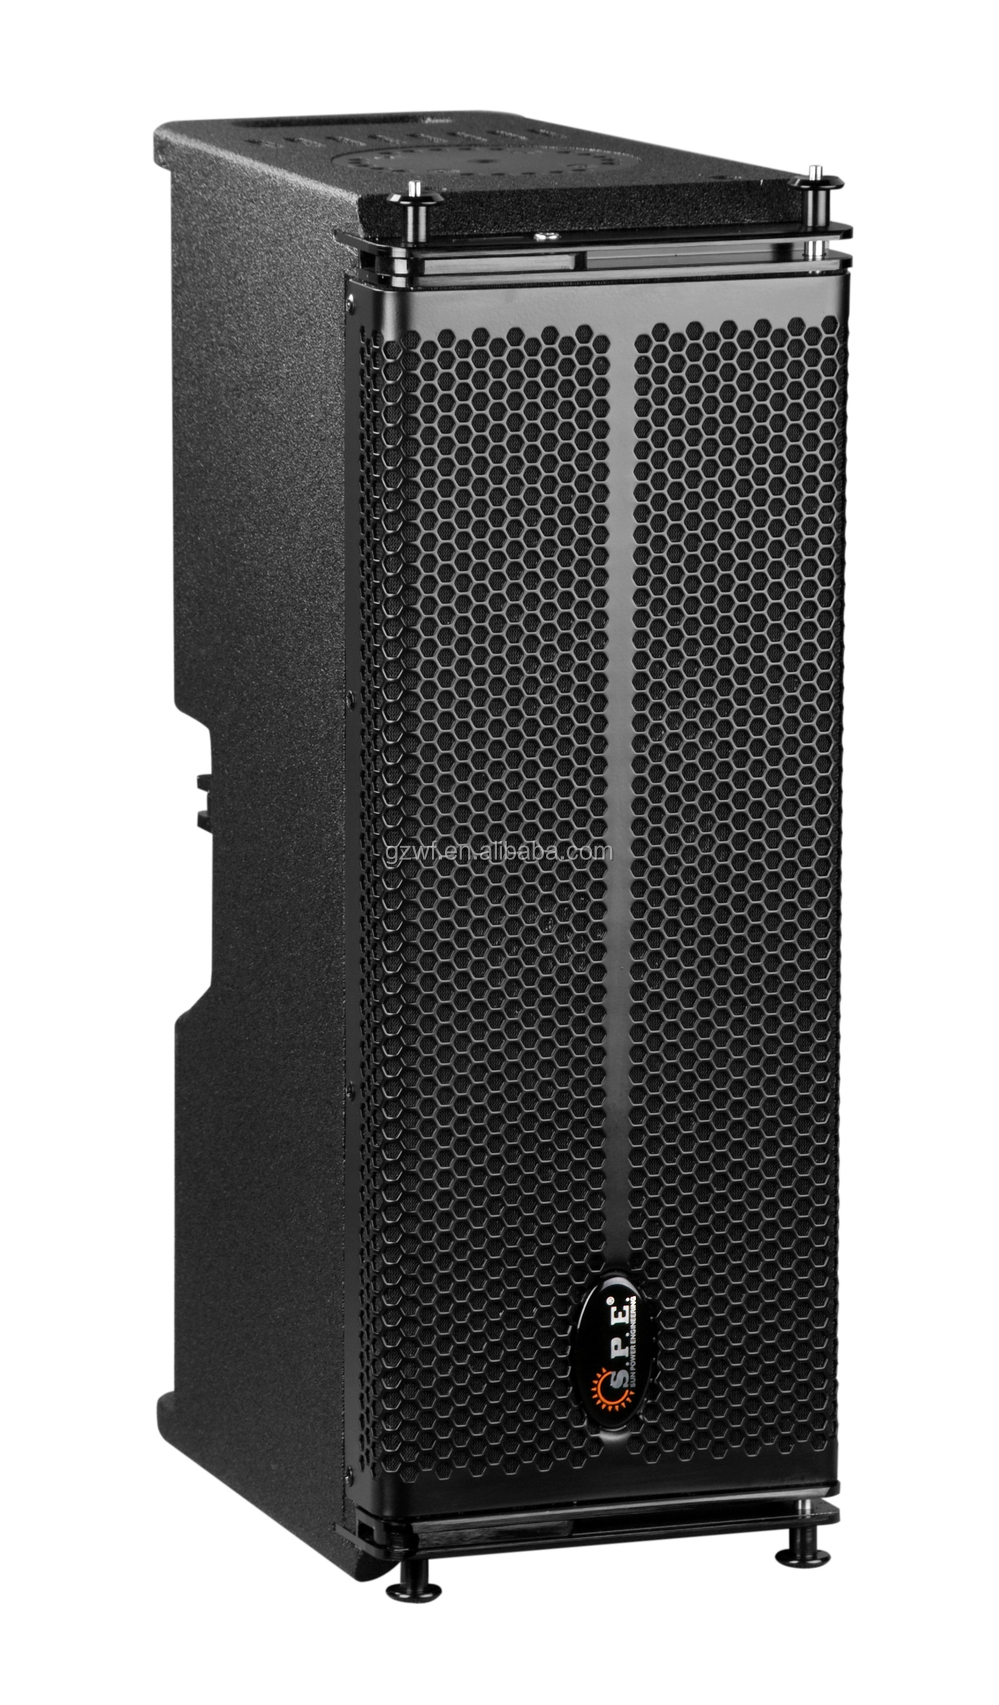 SPE Audio 300W Dual 6.5 inch Mini Portable Amplifier Speaker Line Array LA-1AD